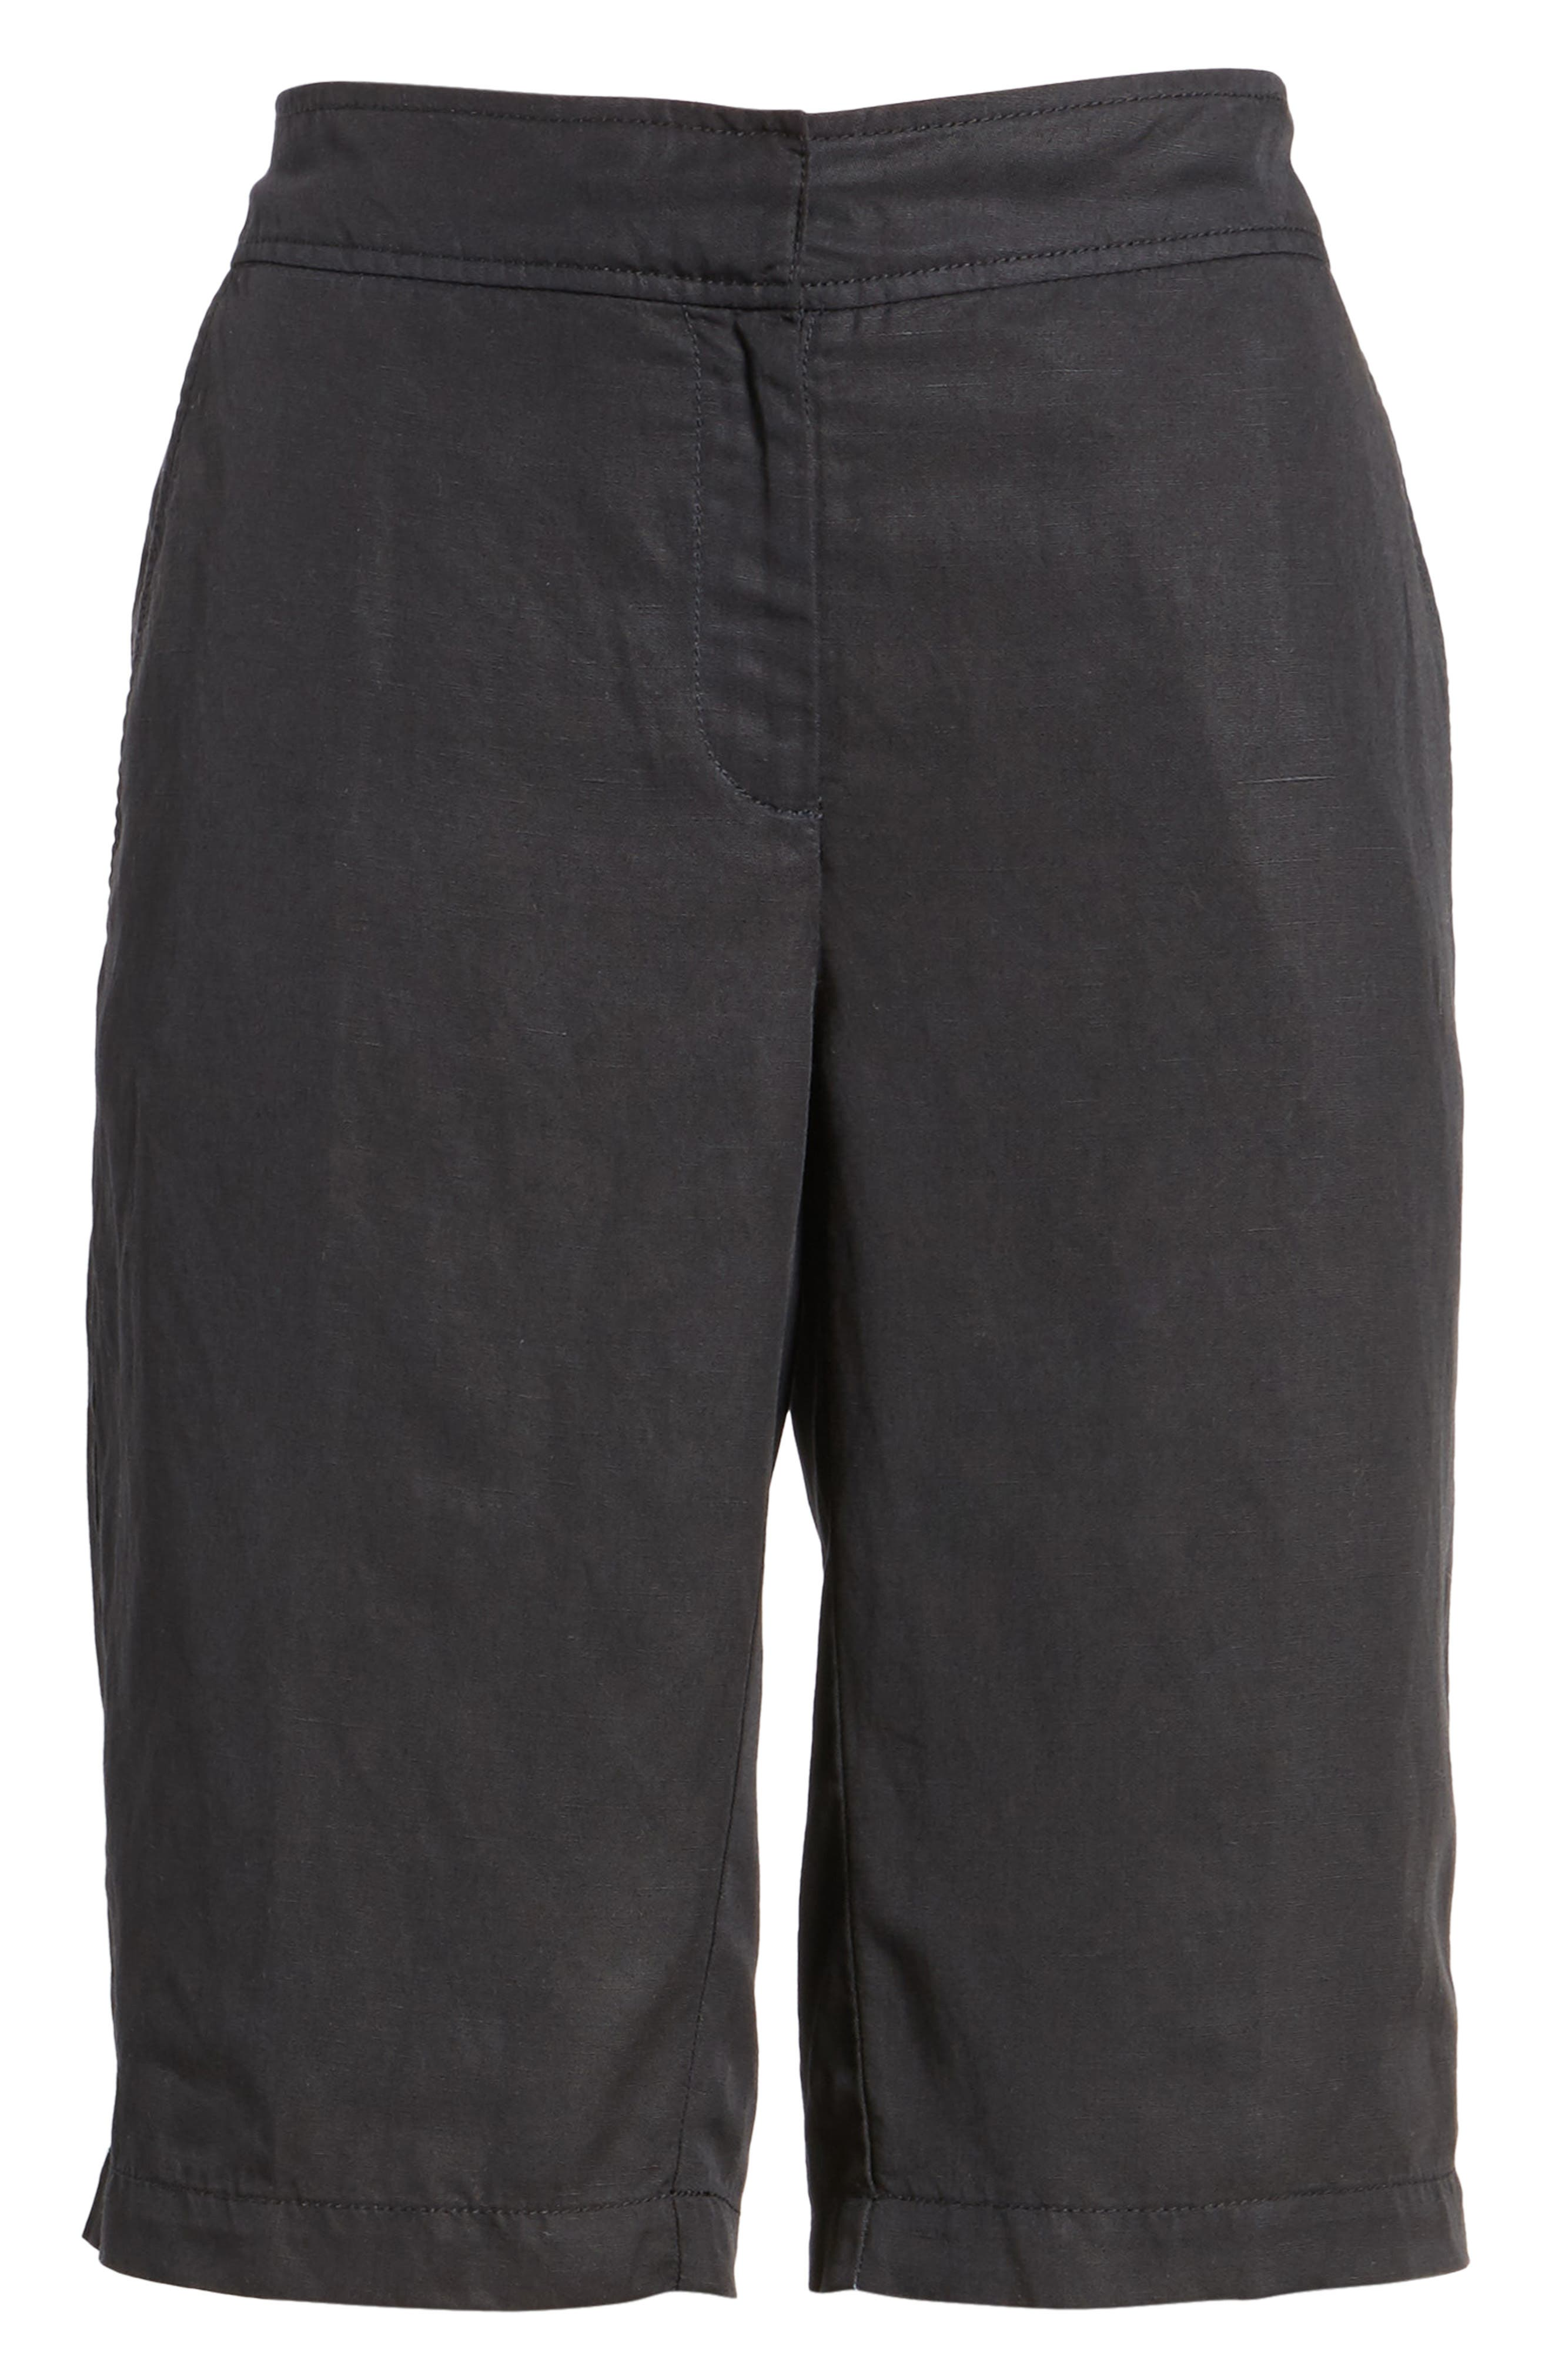 Alternate Image 1 Selected - Eileen Fisher Tencel® & Linen Walking Shorts